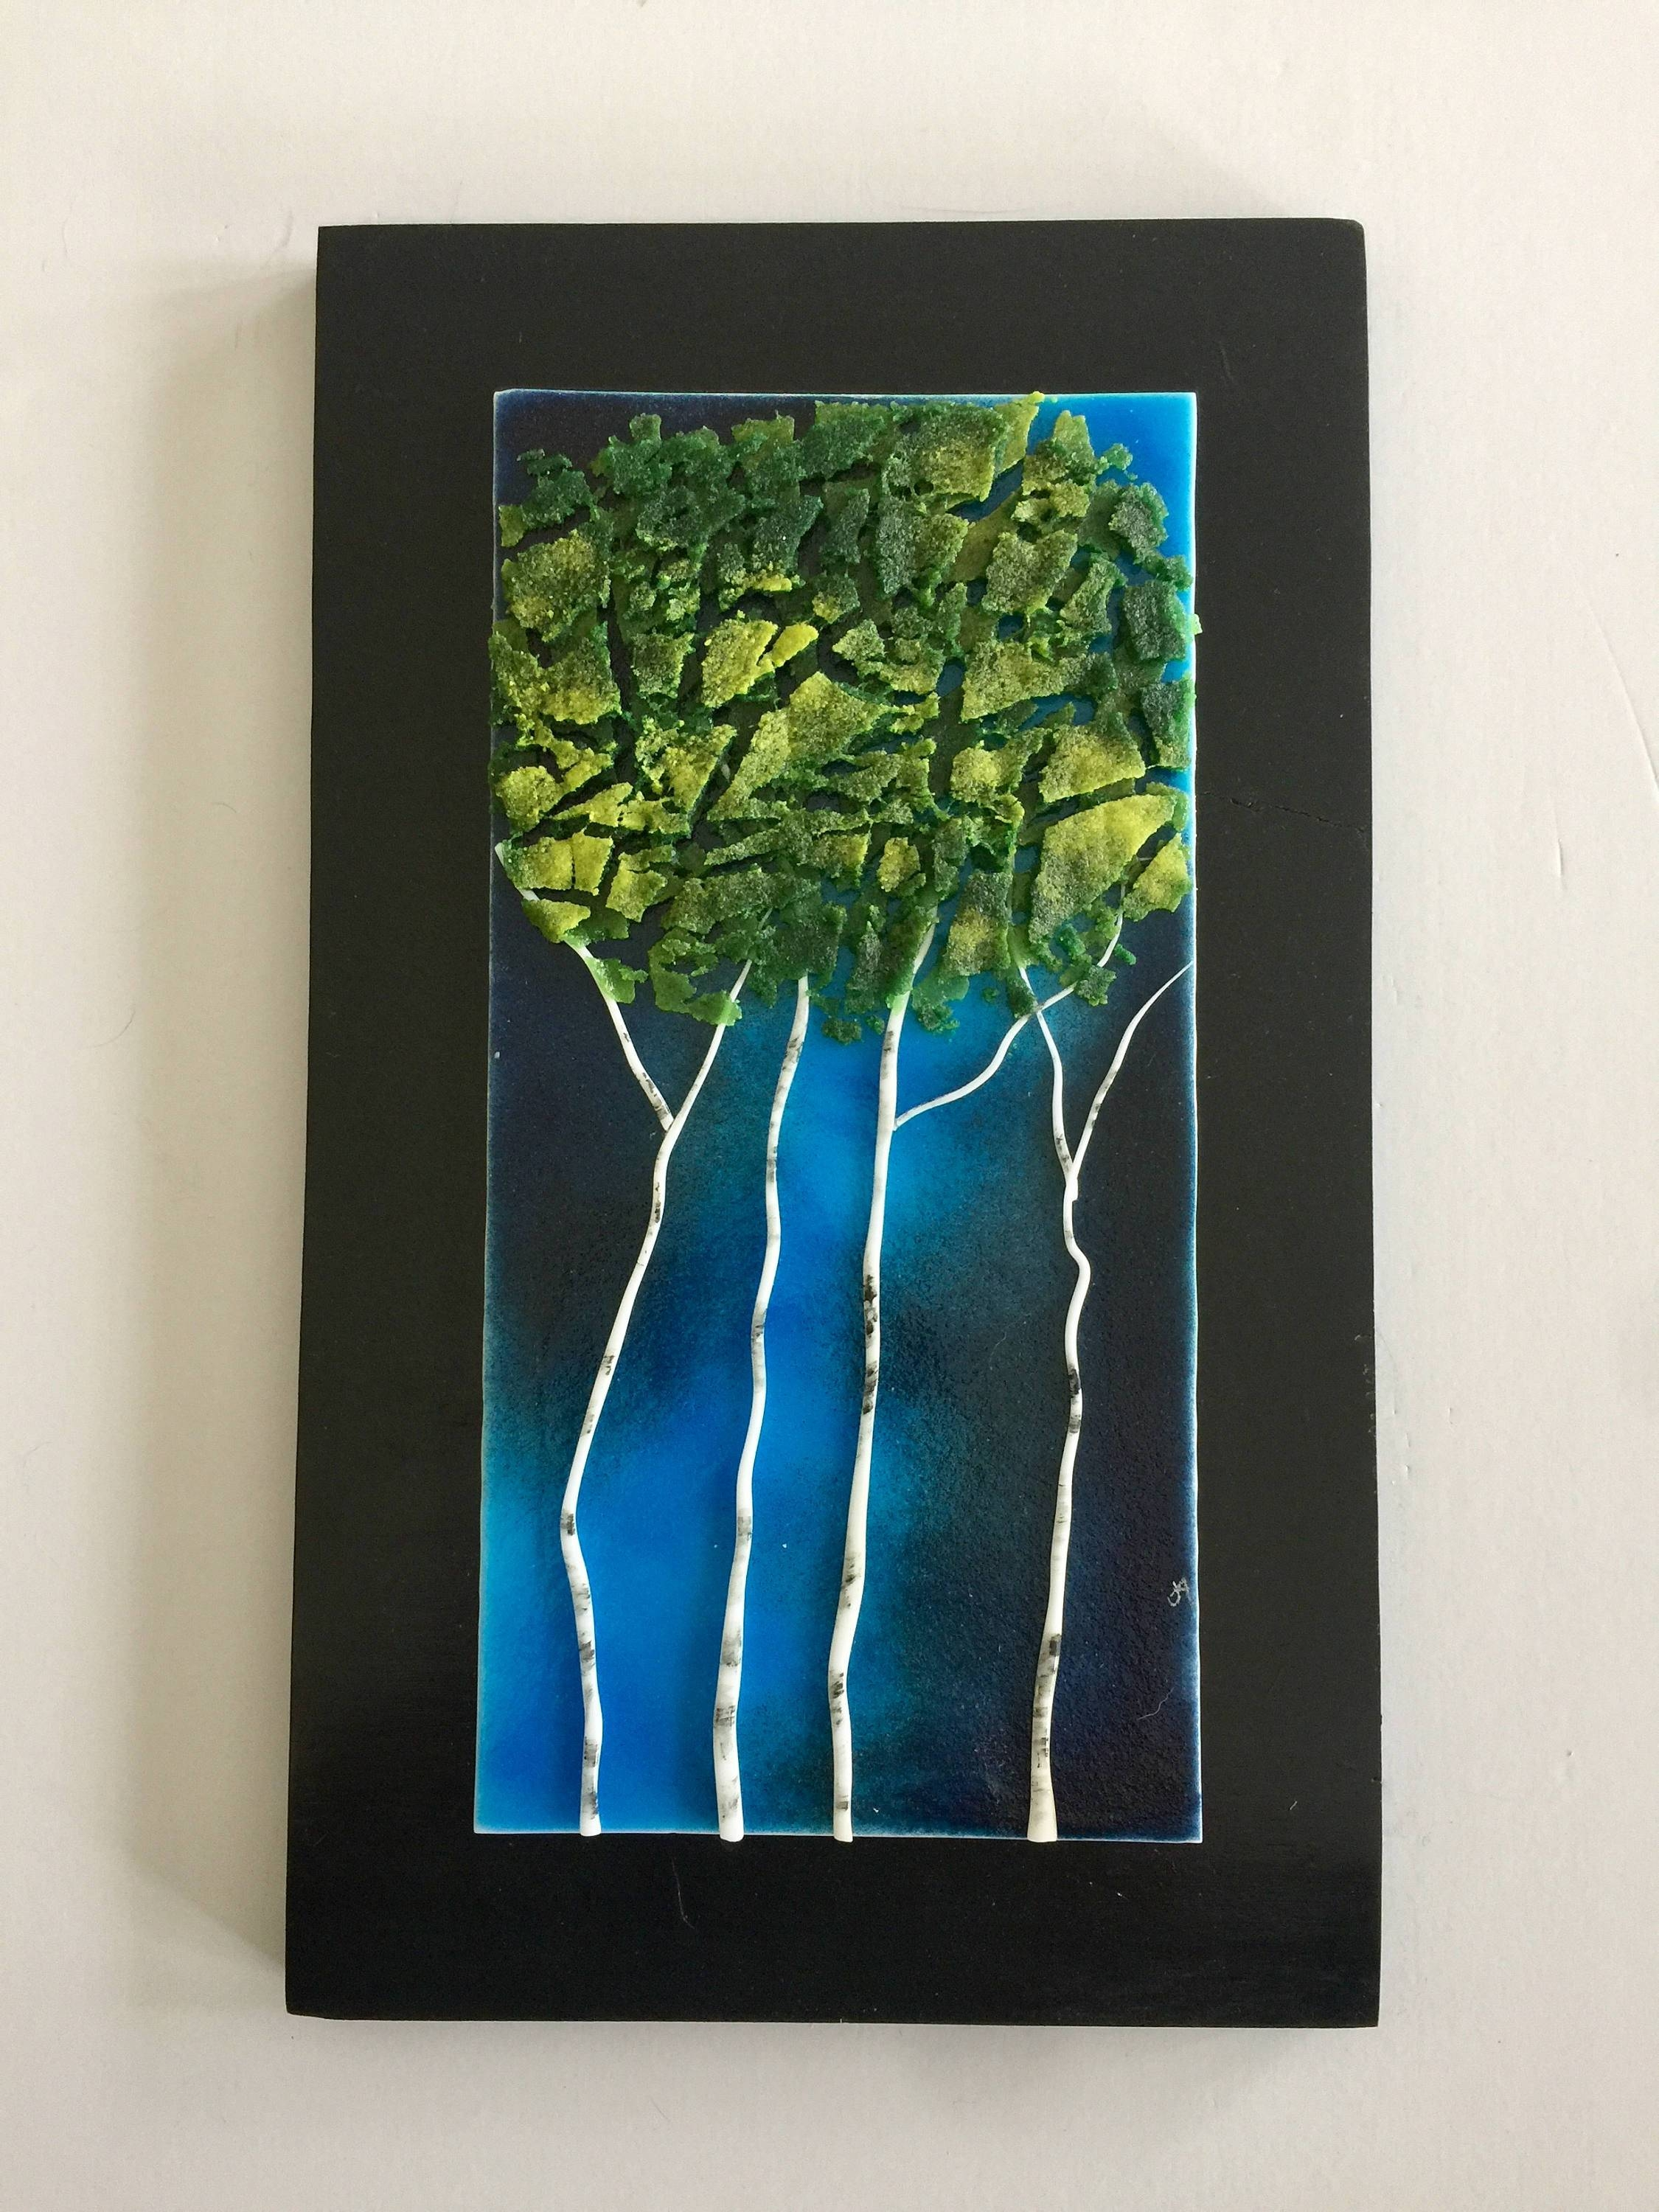 Fused Glass Art, Fused Glass, Handmade Fused Glass,fused Glass Regarding Newest Fused Glass Wall Art (View 9 of 25)